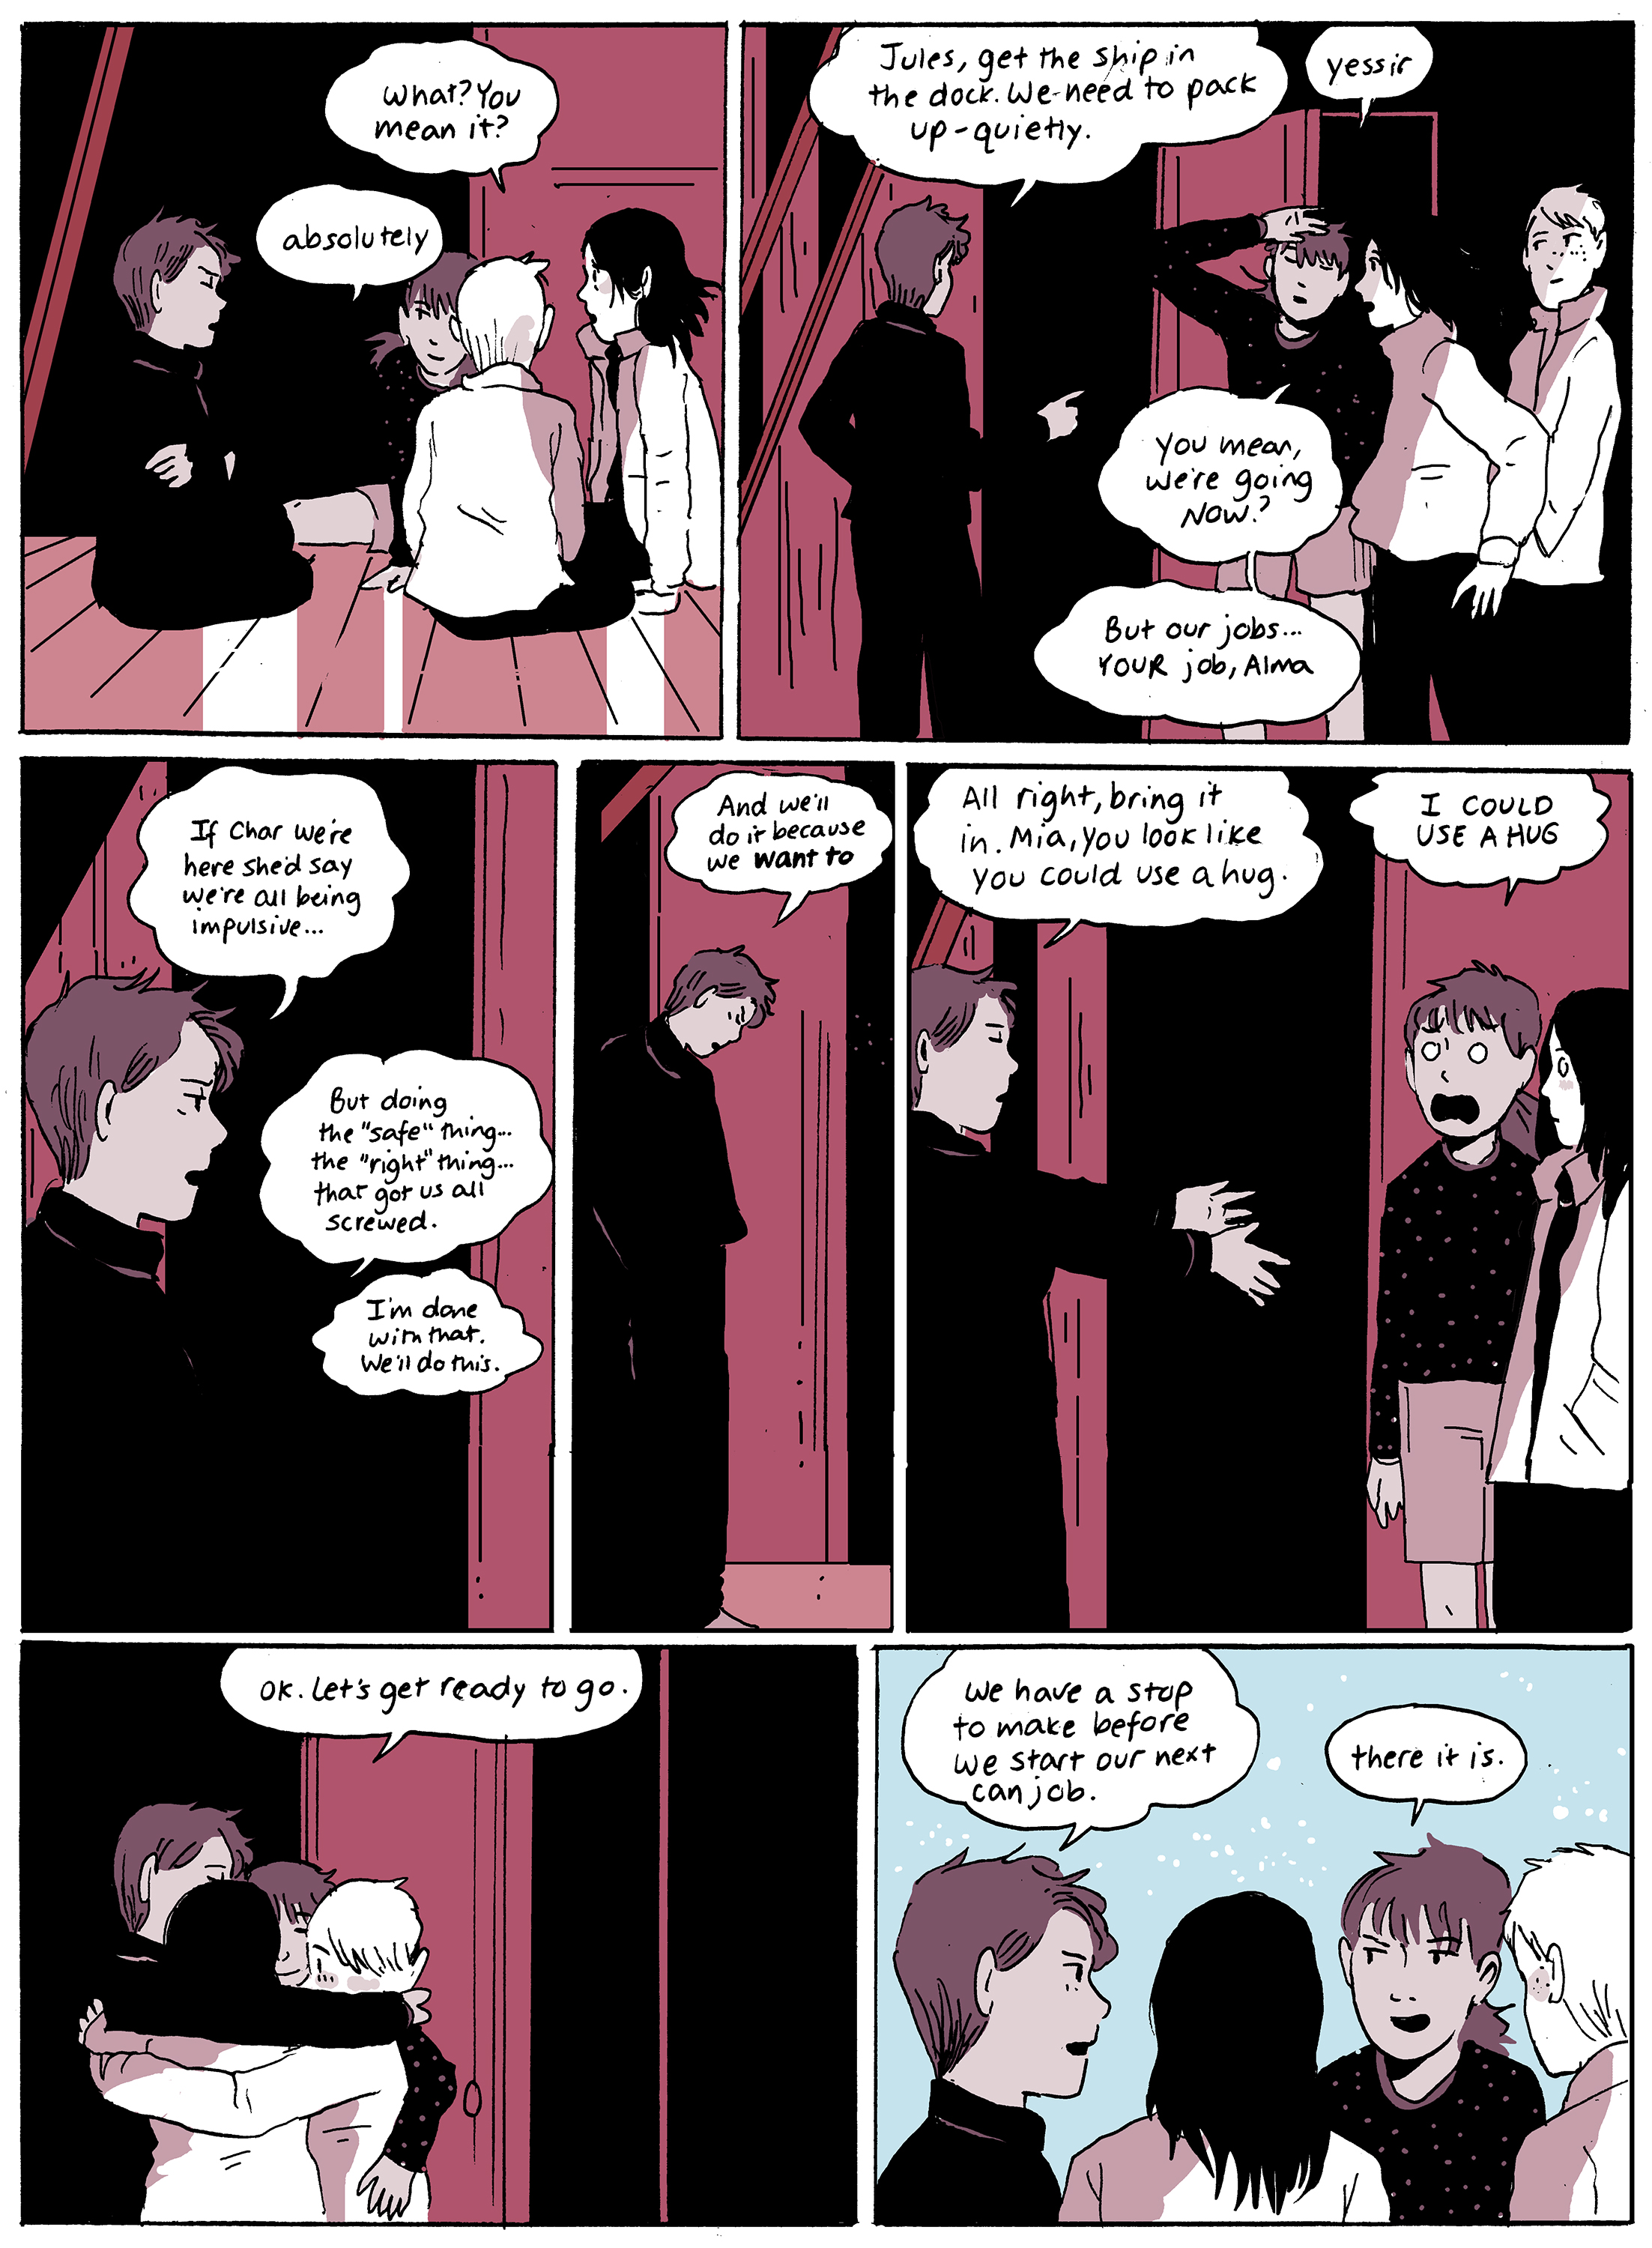 chapter13_page06.jpg